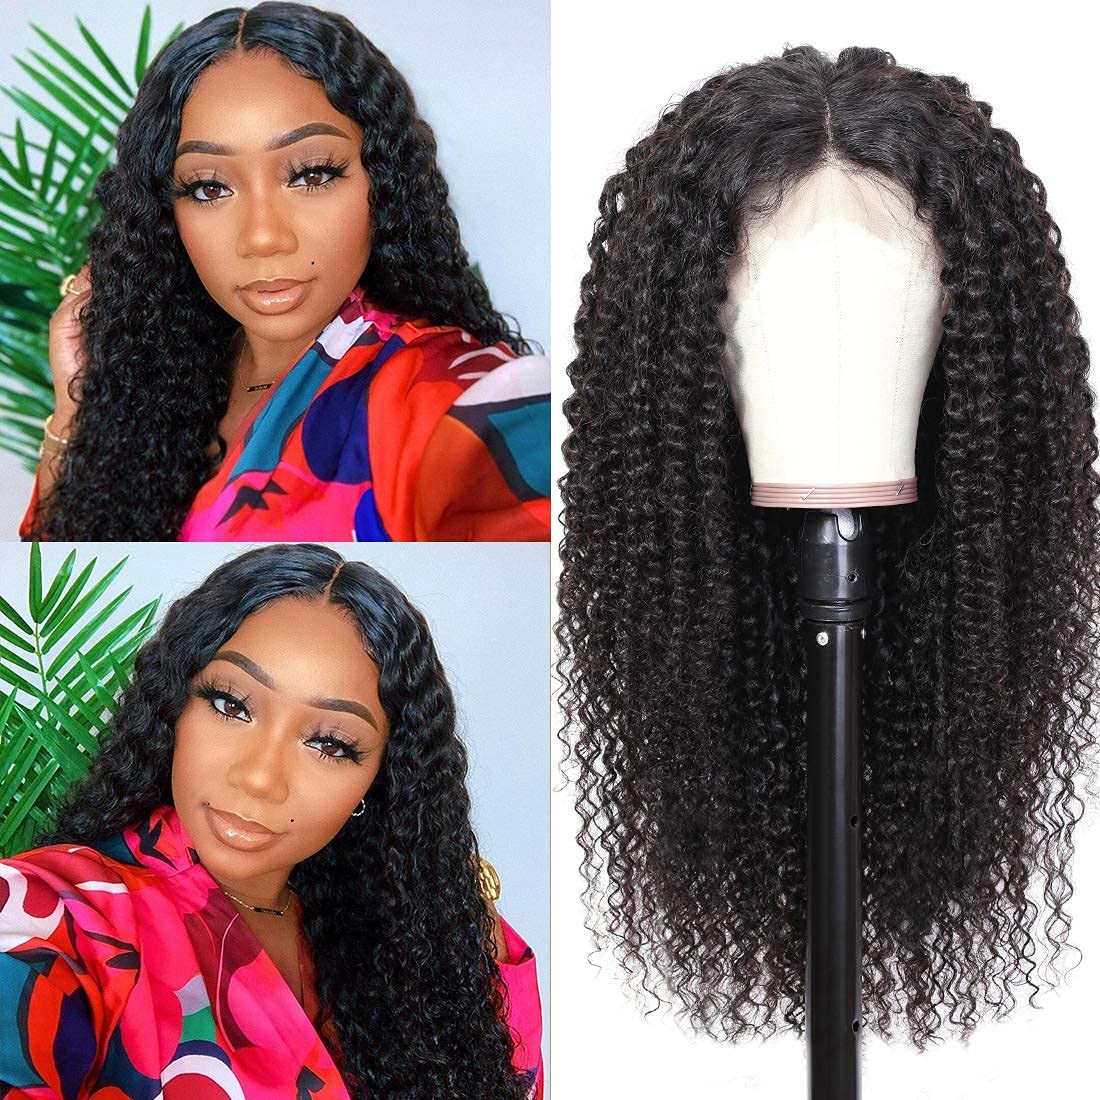 Discount is also underway Nadula Curly 13×4 Lace Front Wigs D 150% Pre Plucked Human Hair Max 83% OFF